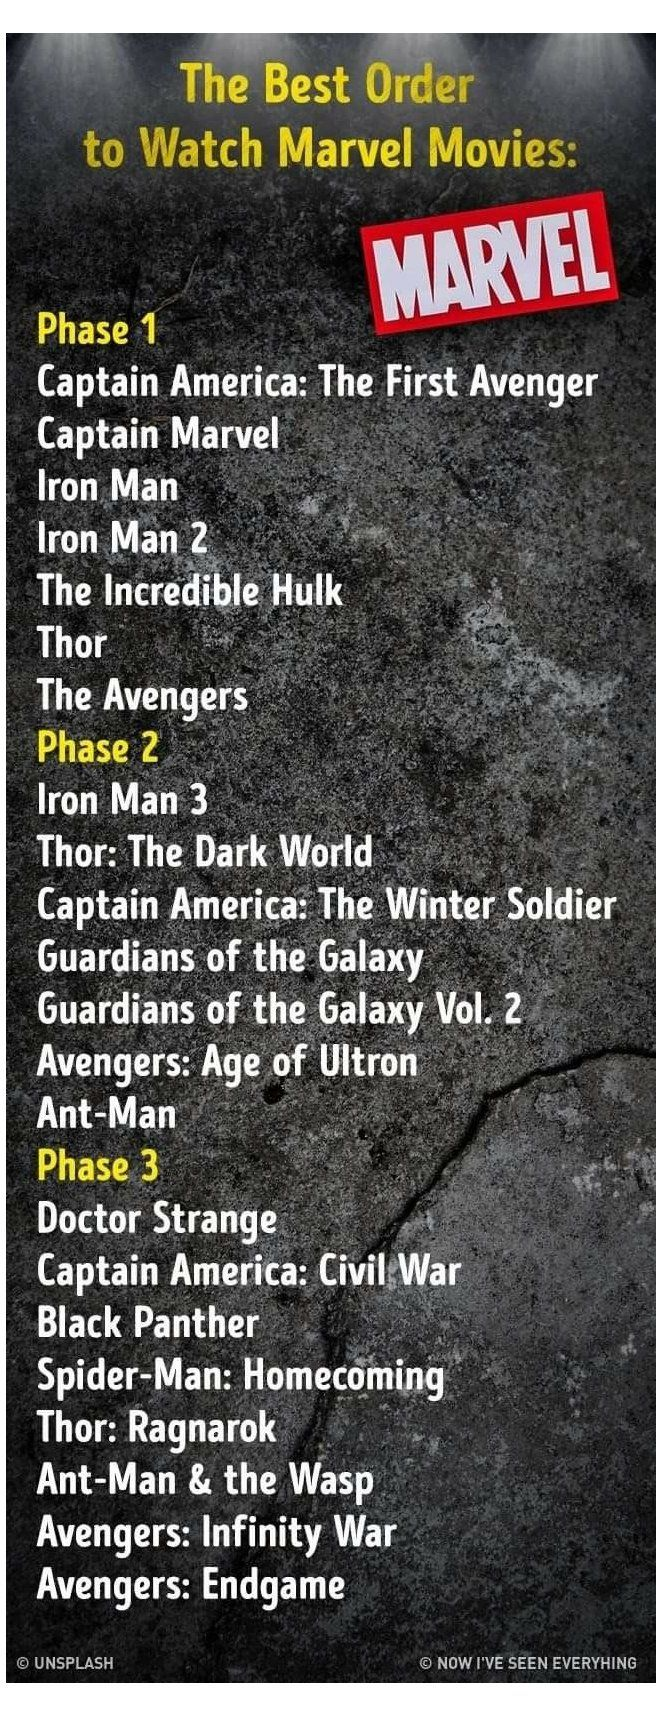 Marvel Movies In Order To Watch The Best Order To Watch Marvel Movies Marvel Movies In Order Marvel Movies All Marvel Movies